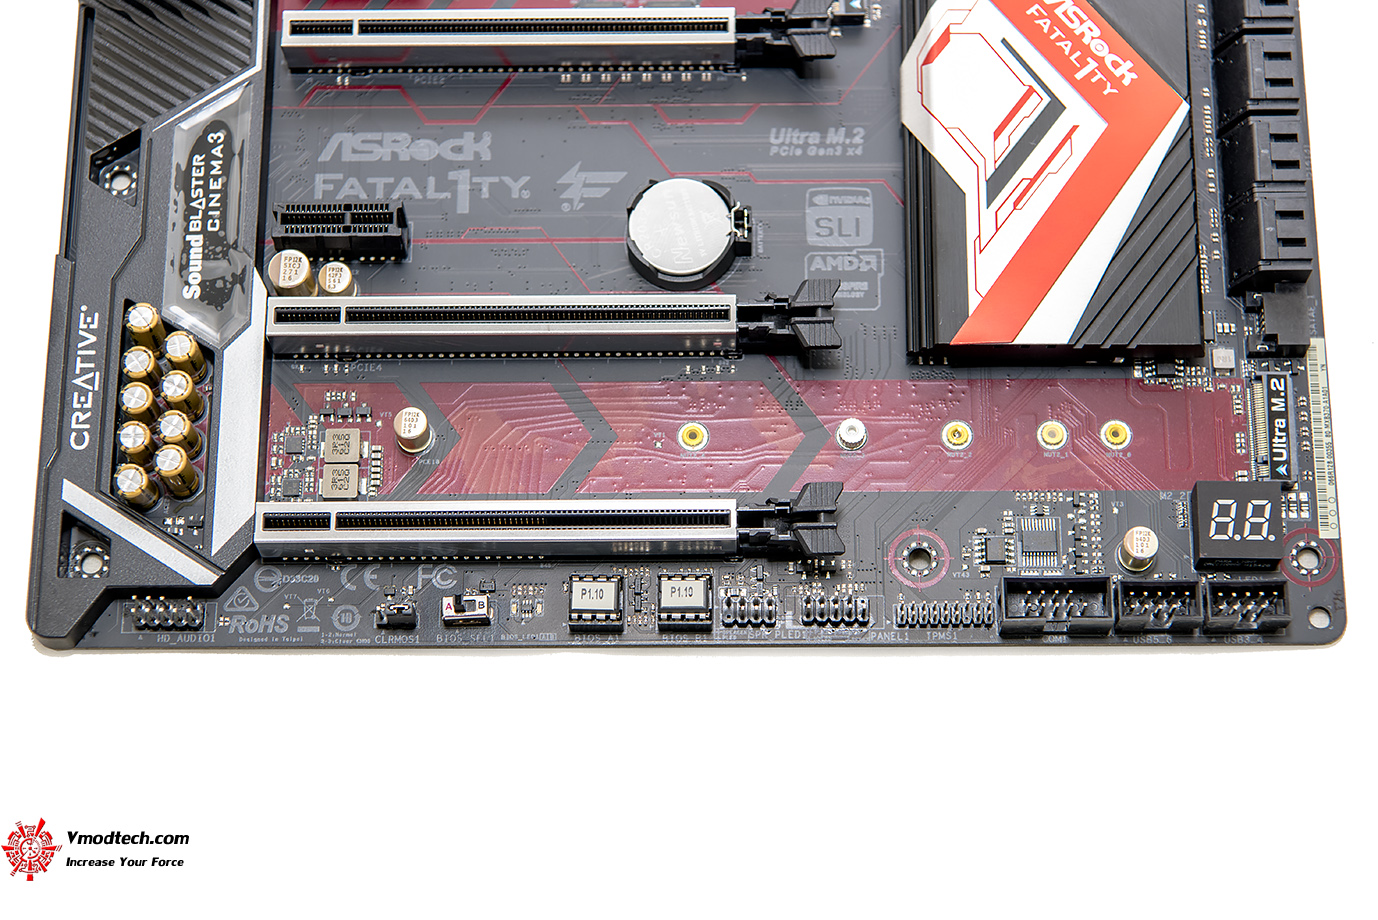 dsc 1985 ASRock Fatal1ty X99 Professional Gaming i7 Motherboard Review